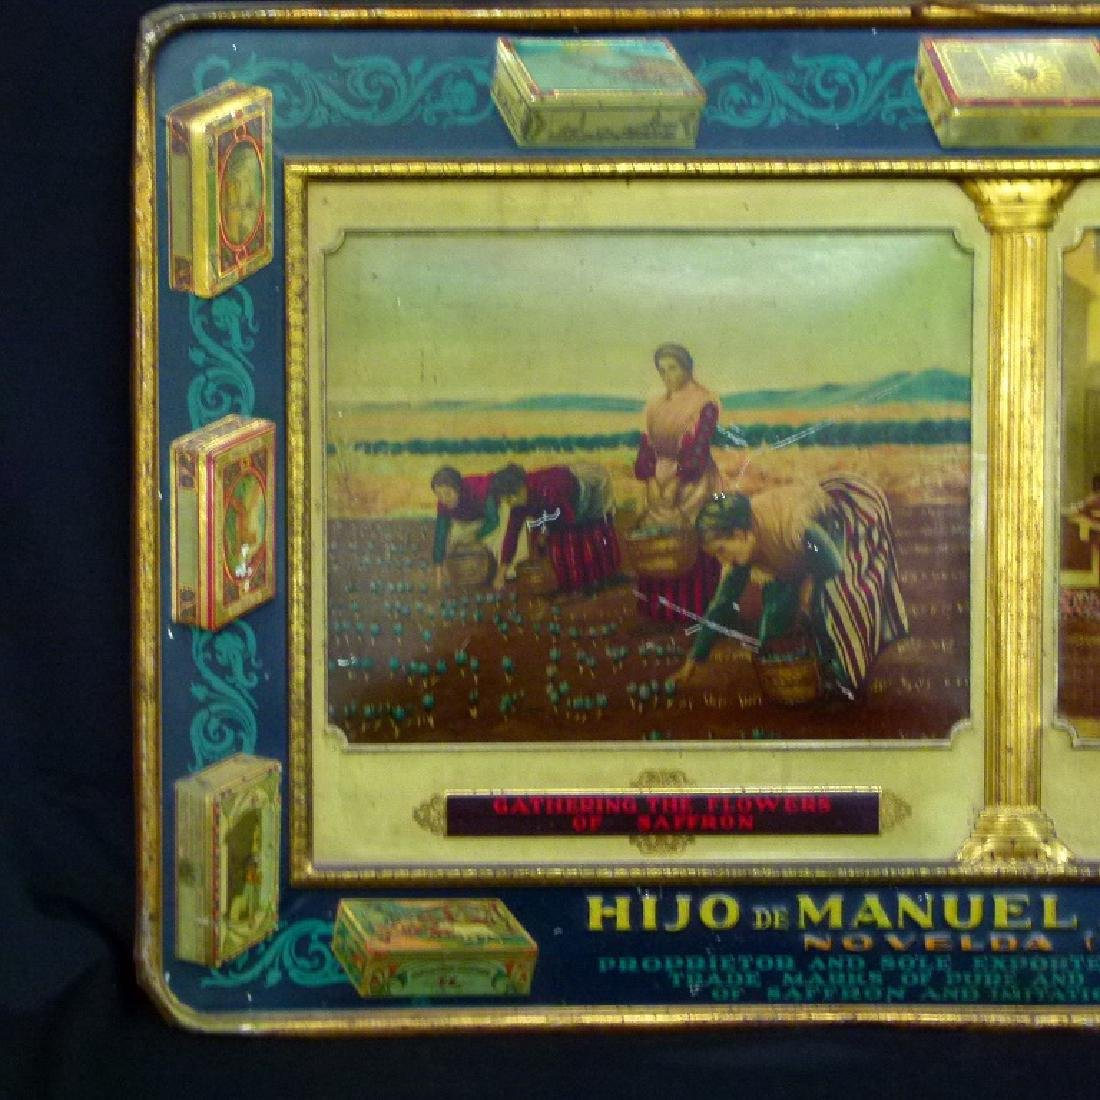 SPANISH LITHO TIN ADVERTISING SIGN, 19TH C. - 2